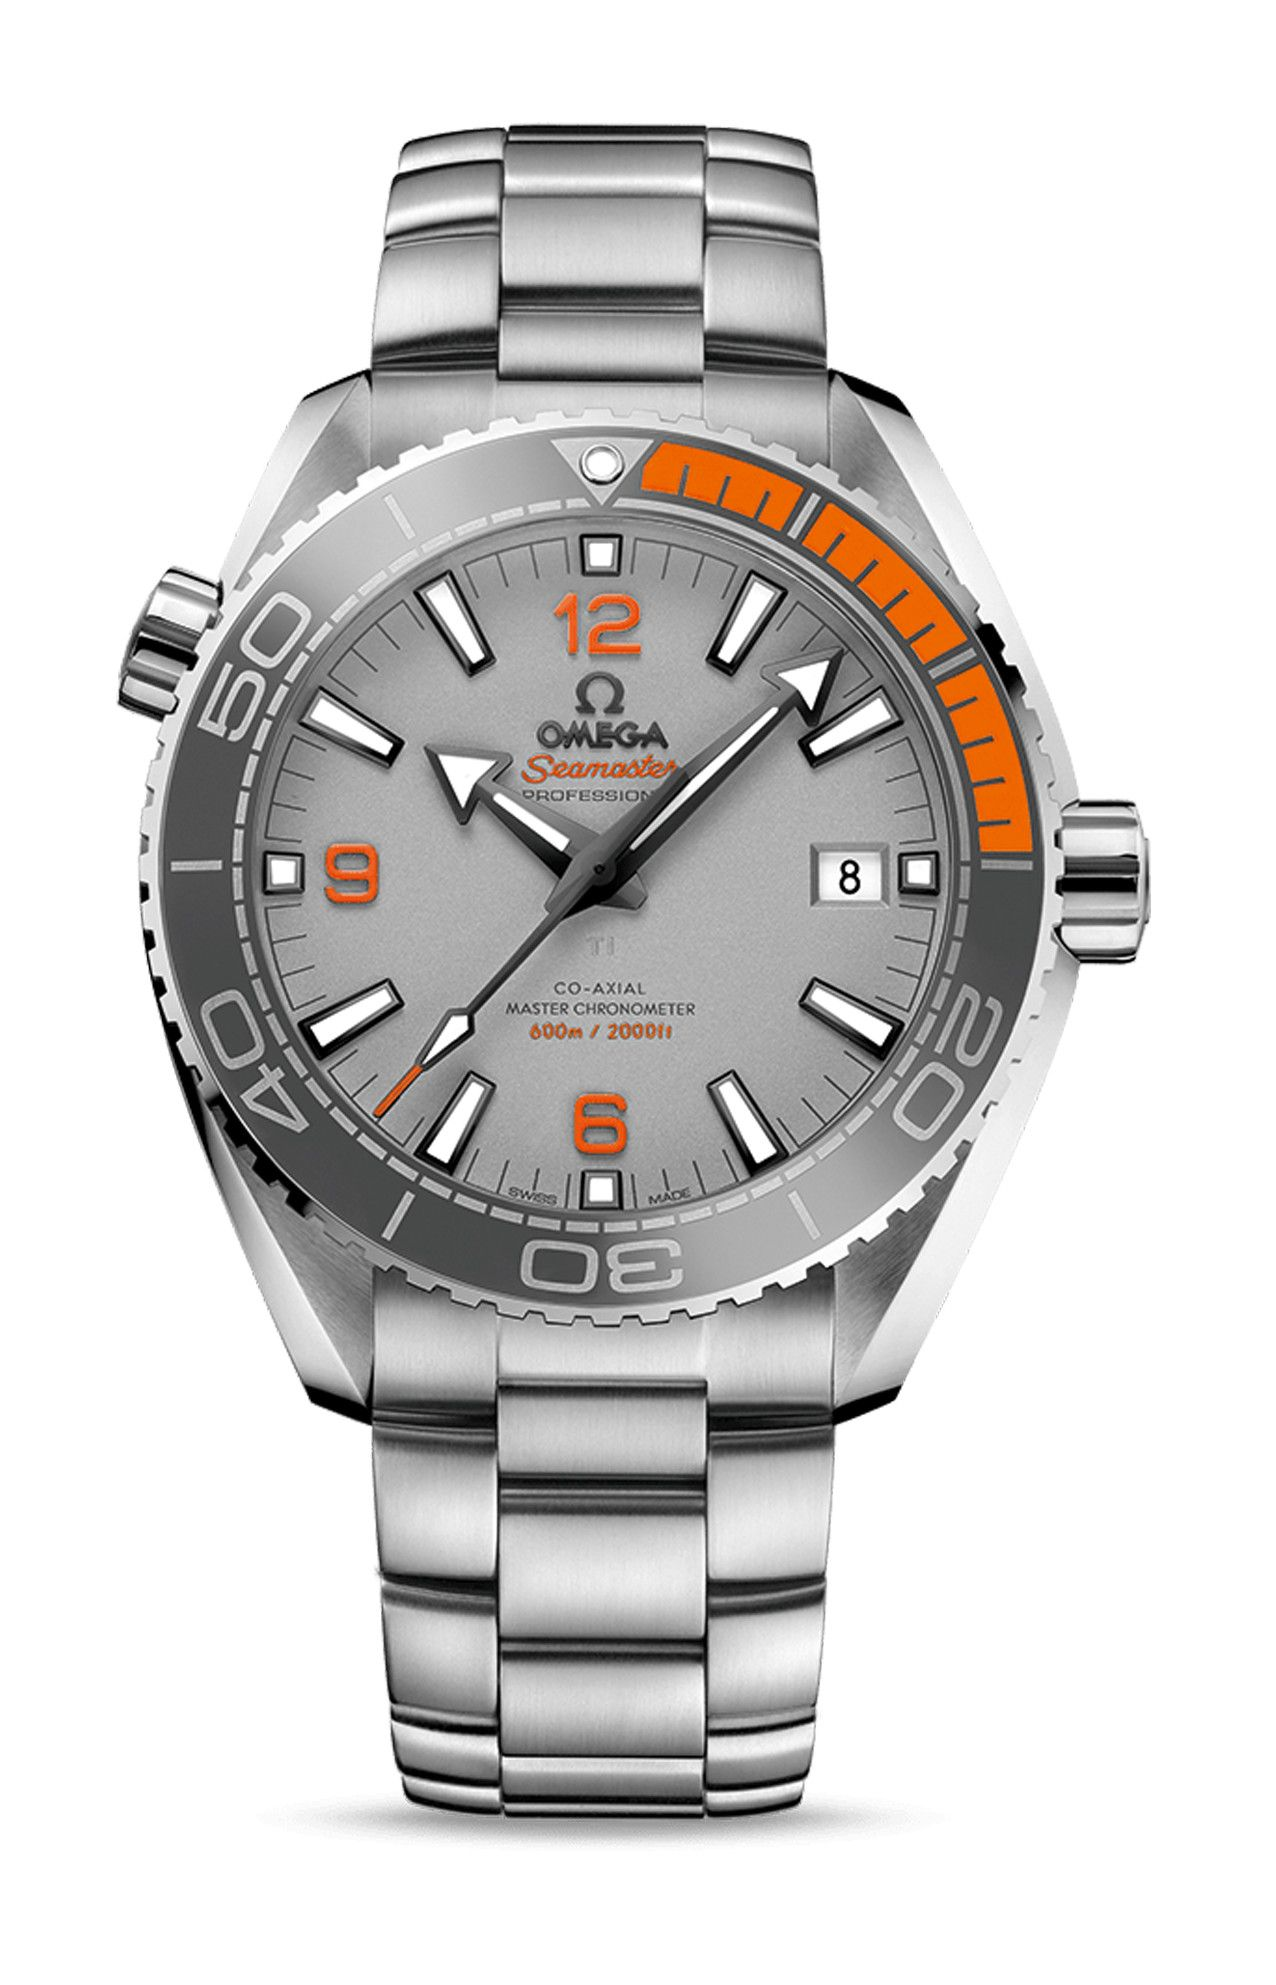 PLANET OCEAN 600M CO-AXIAL MASTER CHRONOMETER - 215.90.44.21.99.001